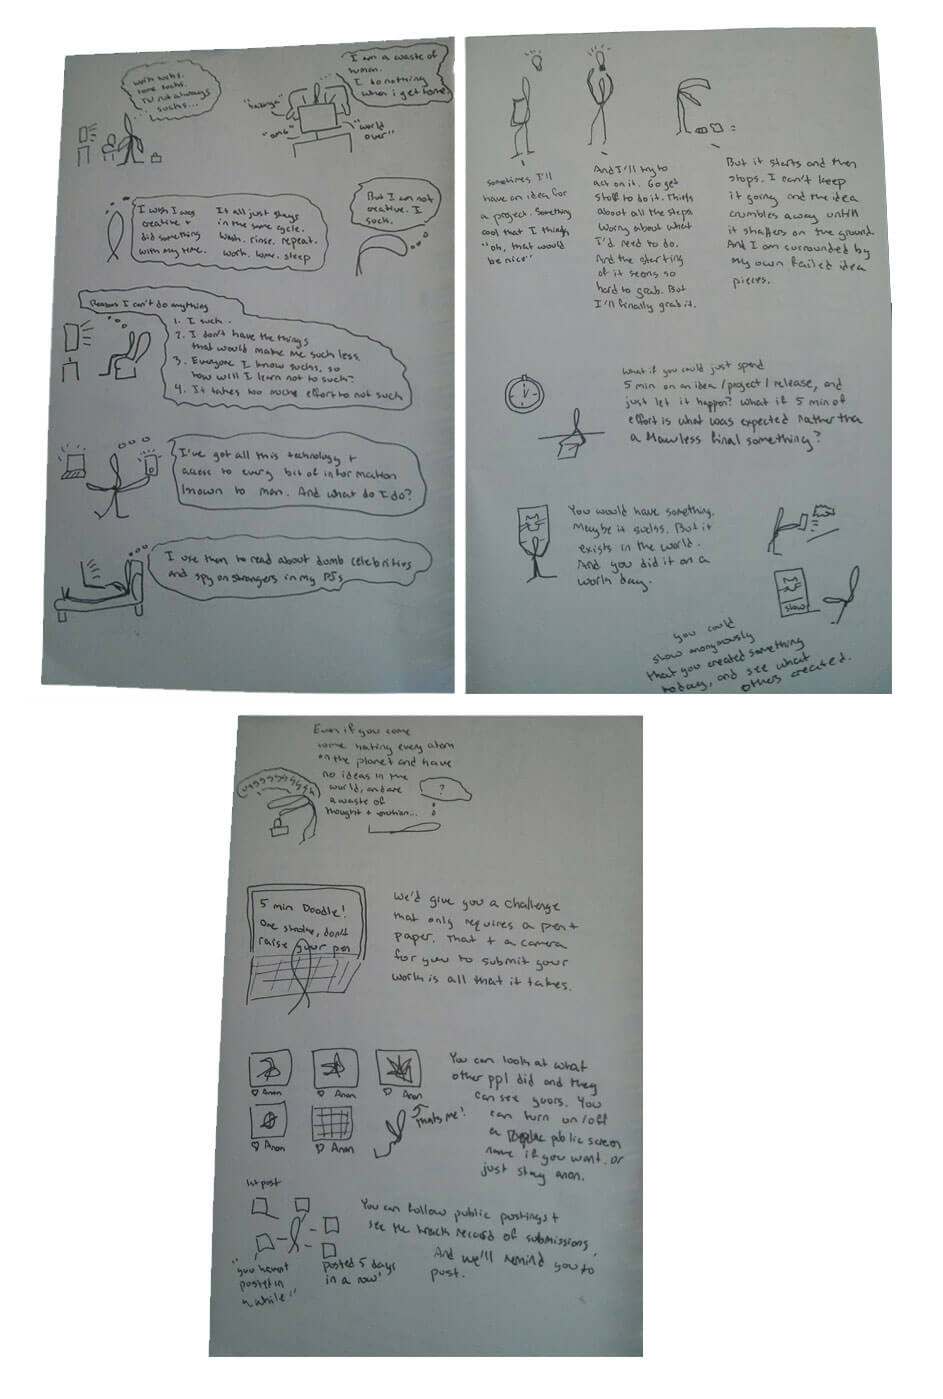 sketches ofinitial thoughts and user story